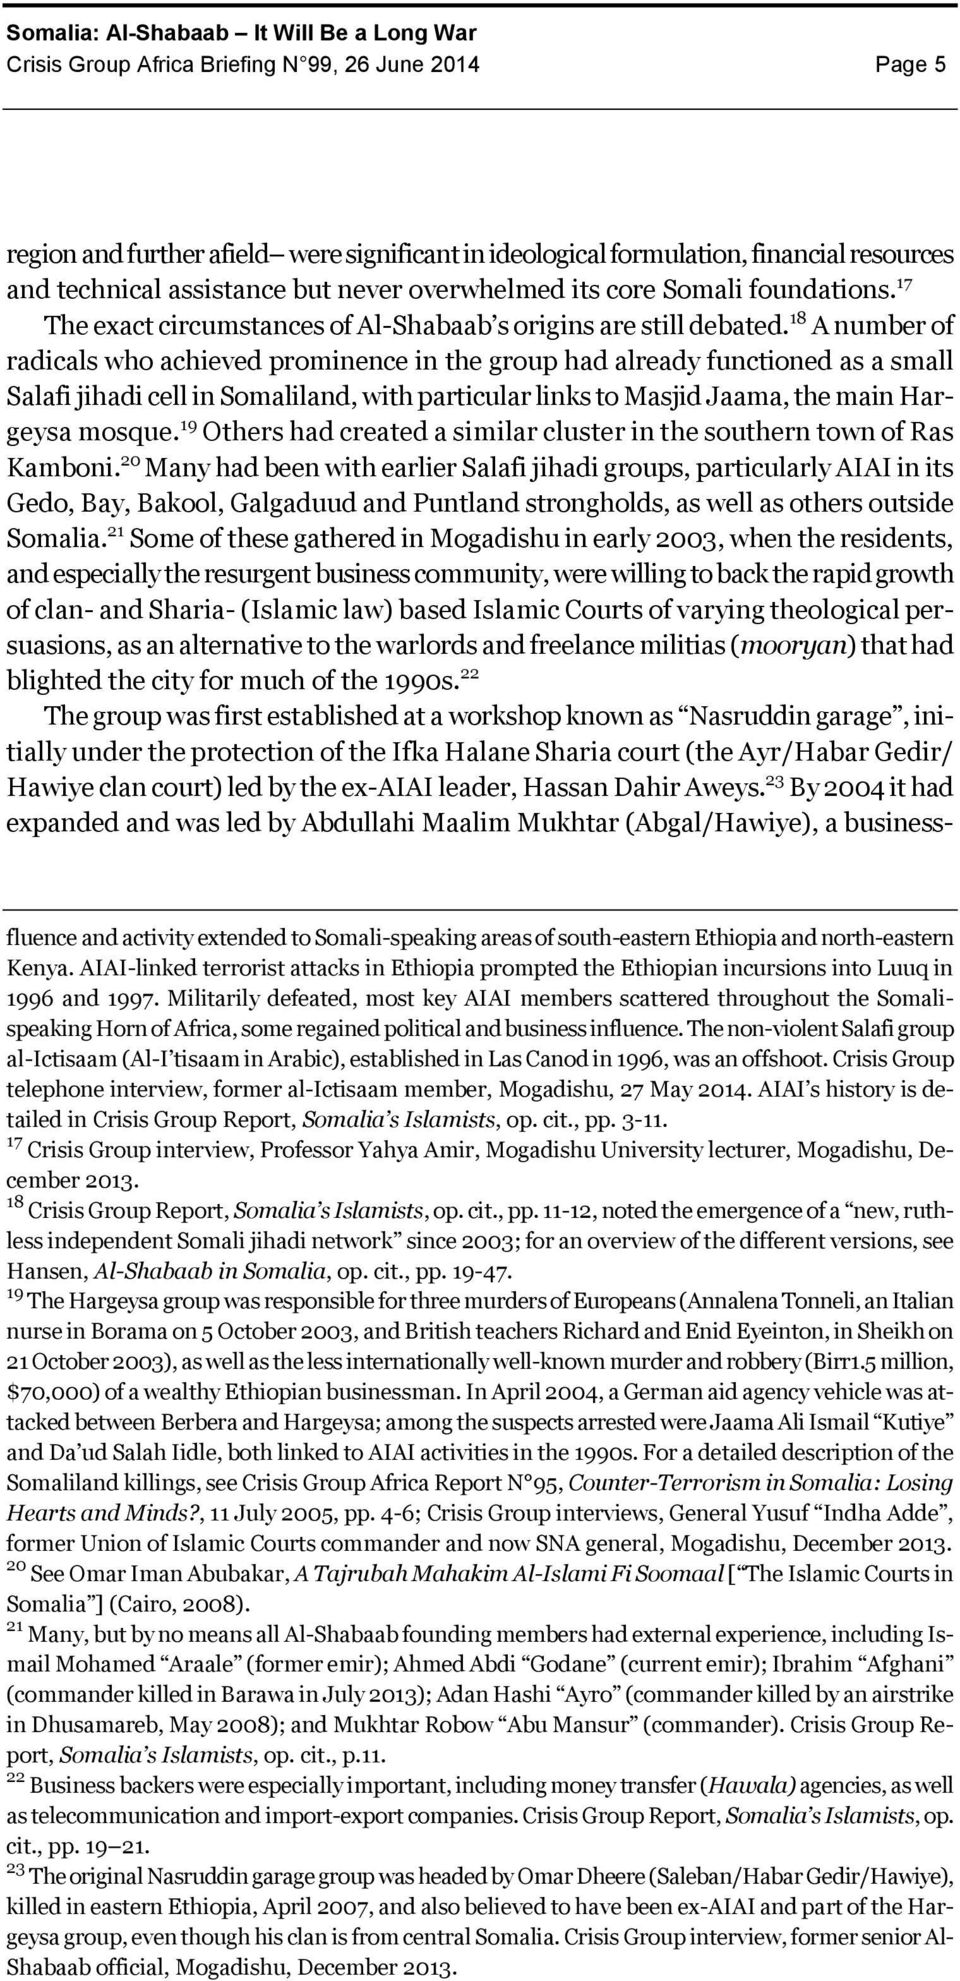 18 A number of radicals who achieved prominence in the group had already functioned as a small Salafi jihadi cell in Somaliland, with particular links to Masjid Jaama, the main Hargeysa mosque.